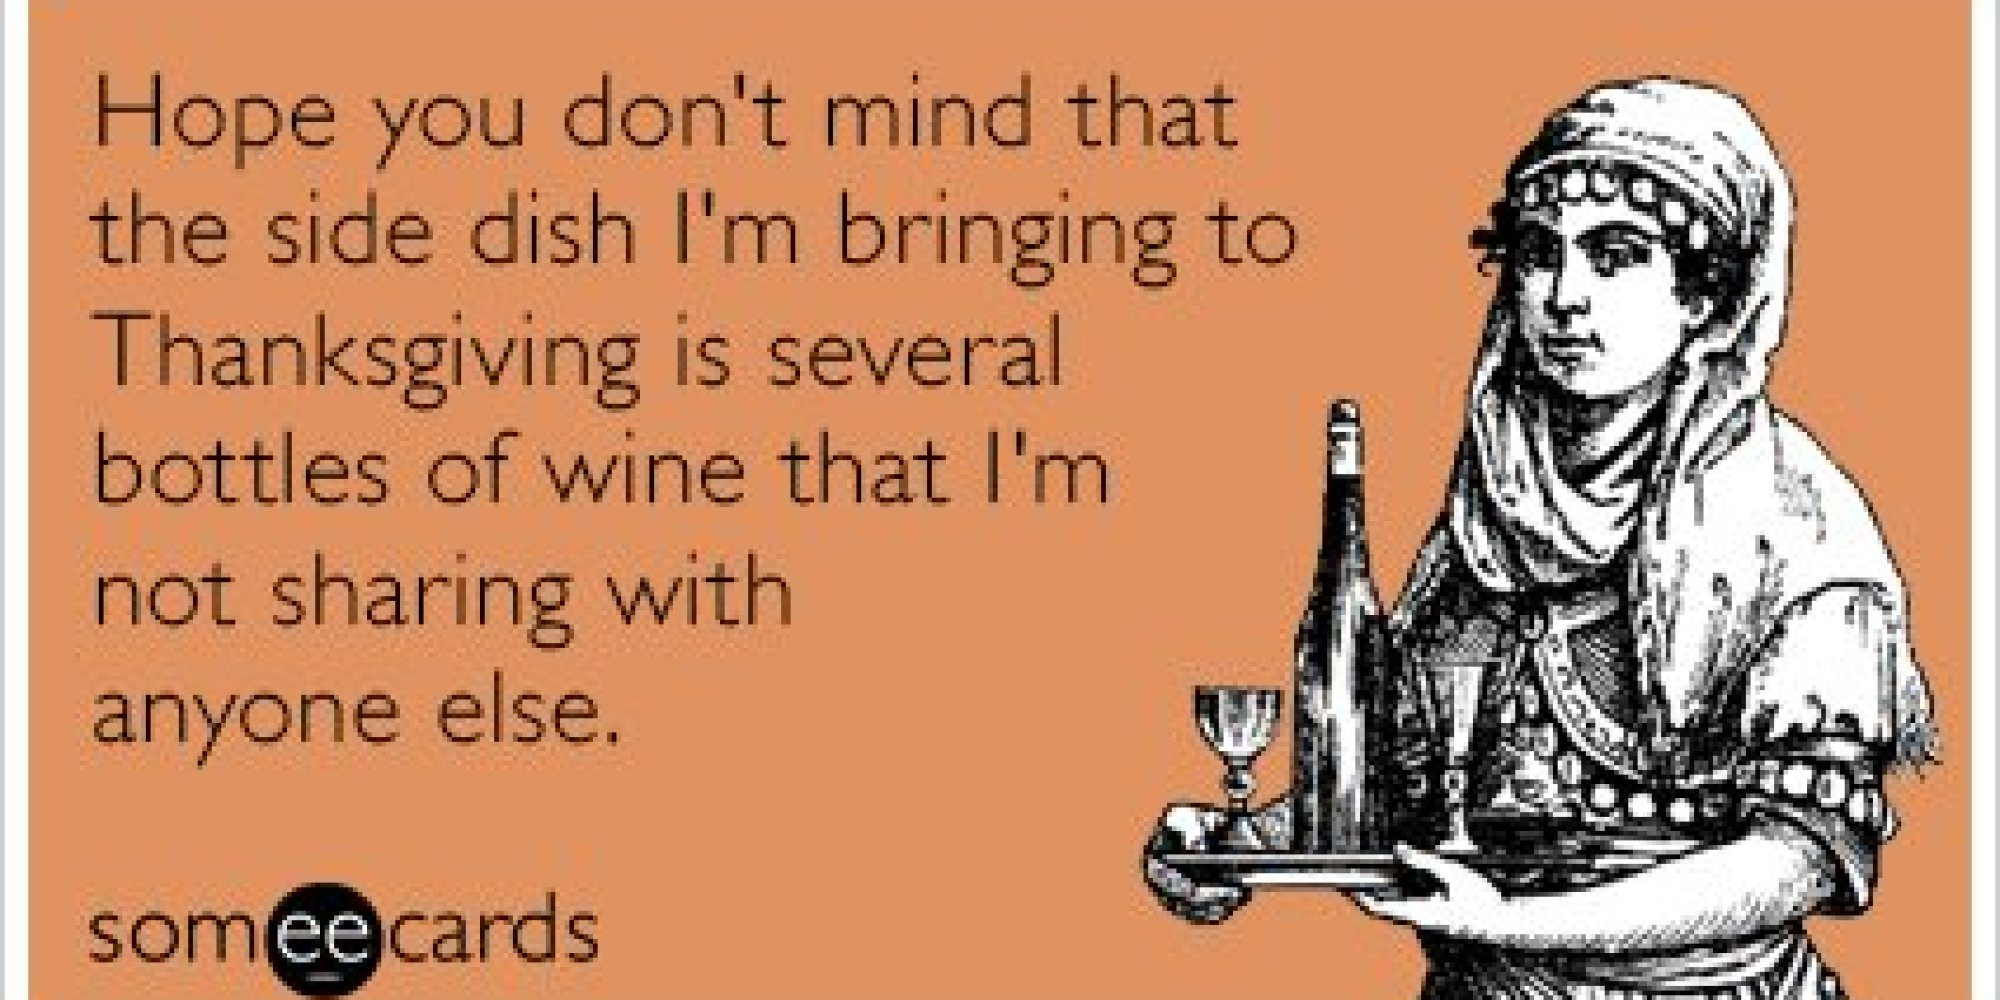 Humorous Thanksgiving Quotes  17 Thanksgiving Someecards To Brighten Up Your Turkey Day